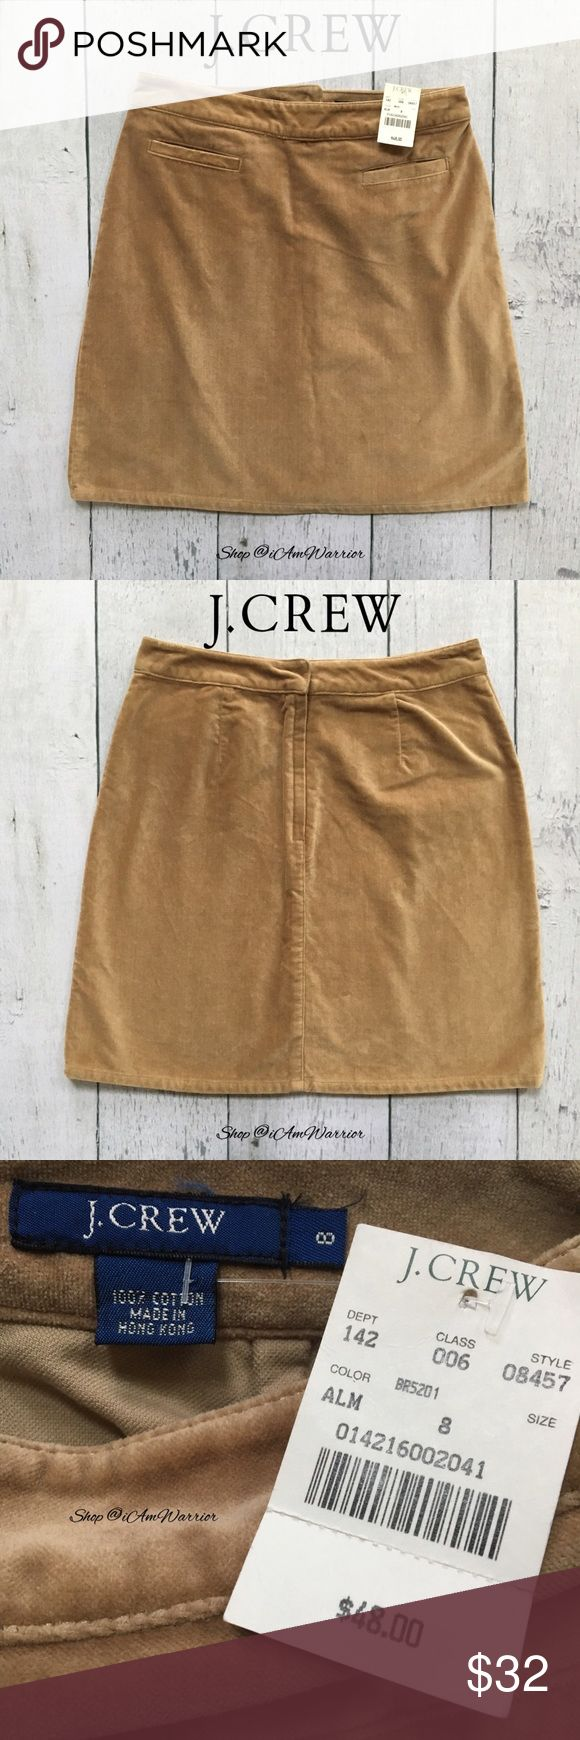 "🆕NWT J. Crew camel cotton velvet mini skirt NWT J. Crew velvet mini skirt. Color is called almond, and depending on the light it looks tan to warm caramel in color. Size 8 but fits like a size 6 due to waist size. Approx 20"" long, 14"" across waist. Please read updated bio regarding closet policies prior to any inquiries. J. Crew Skirts Mini"